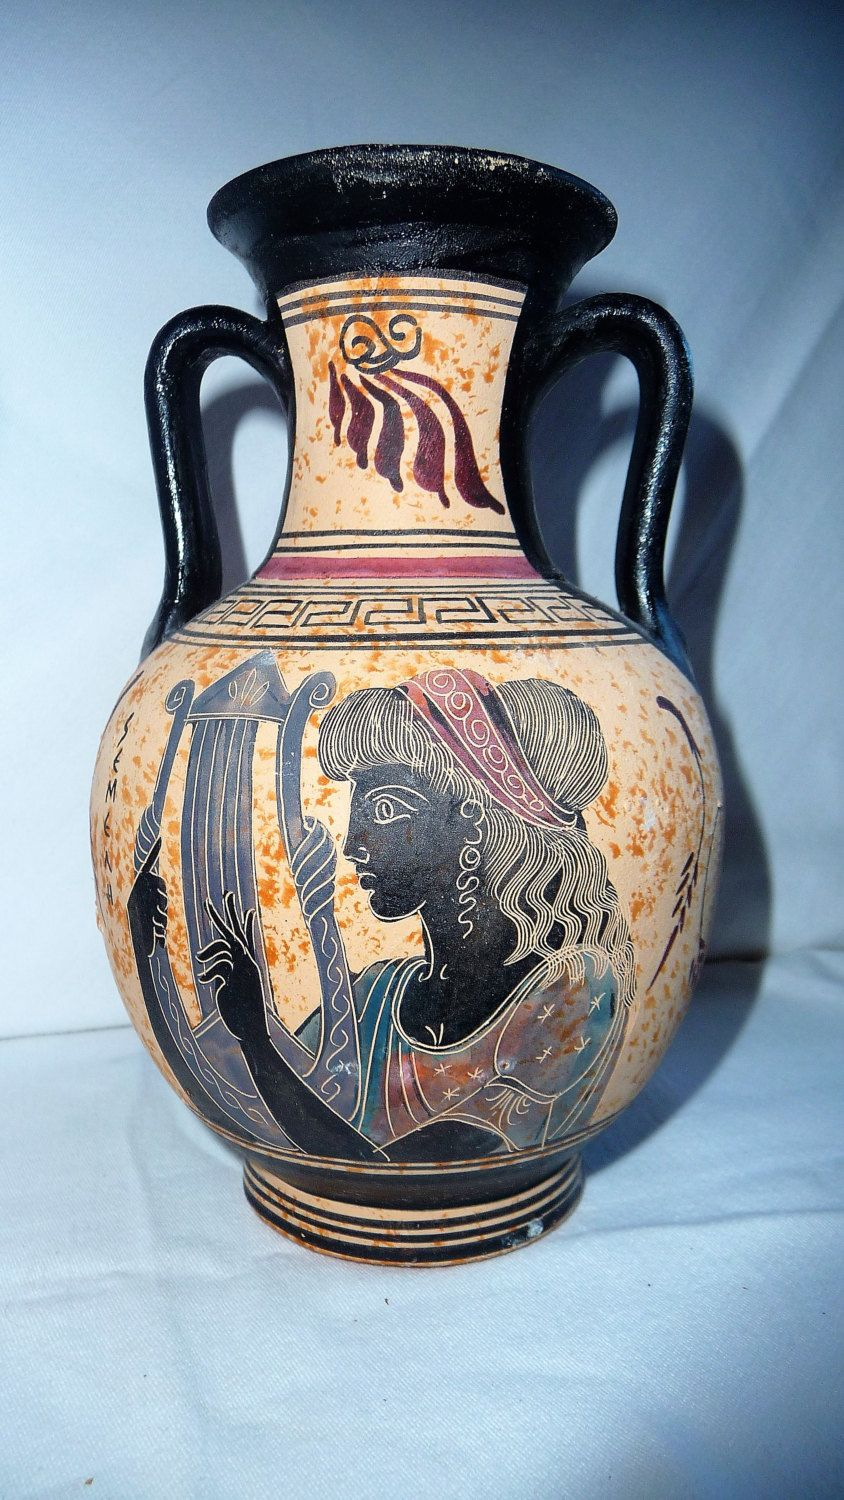 Vintage greek pottery ancient ceramic vase semeli the mother of vintage greek pottery ancient ceramic vase semeli the mother of dionysos amphora shape vase greece reviewsmspy